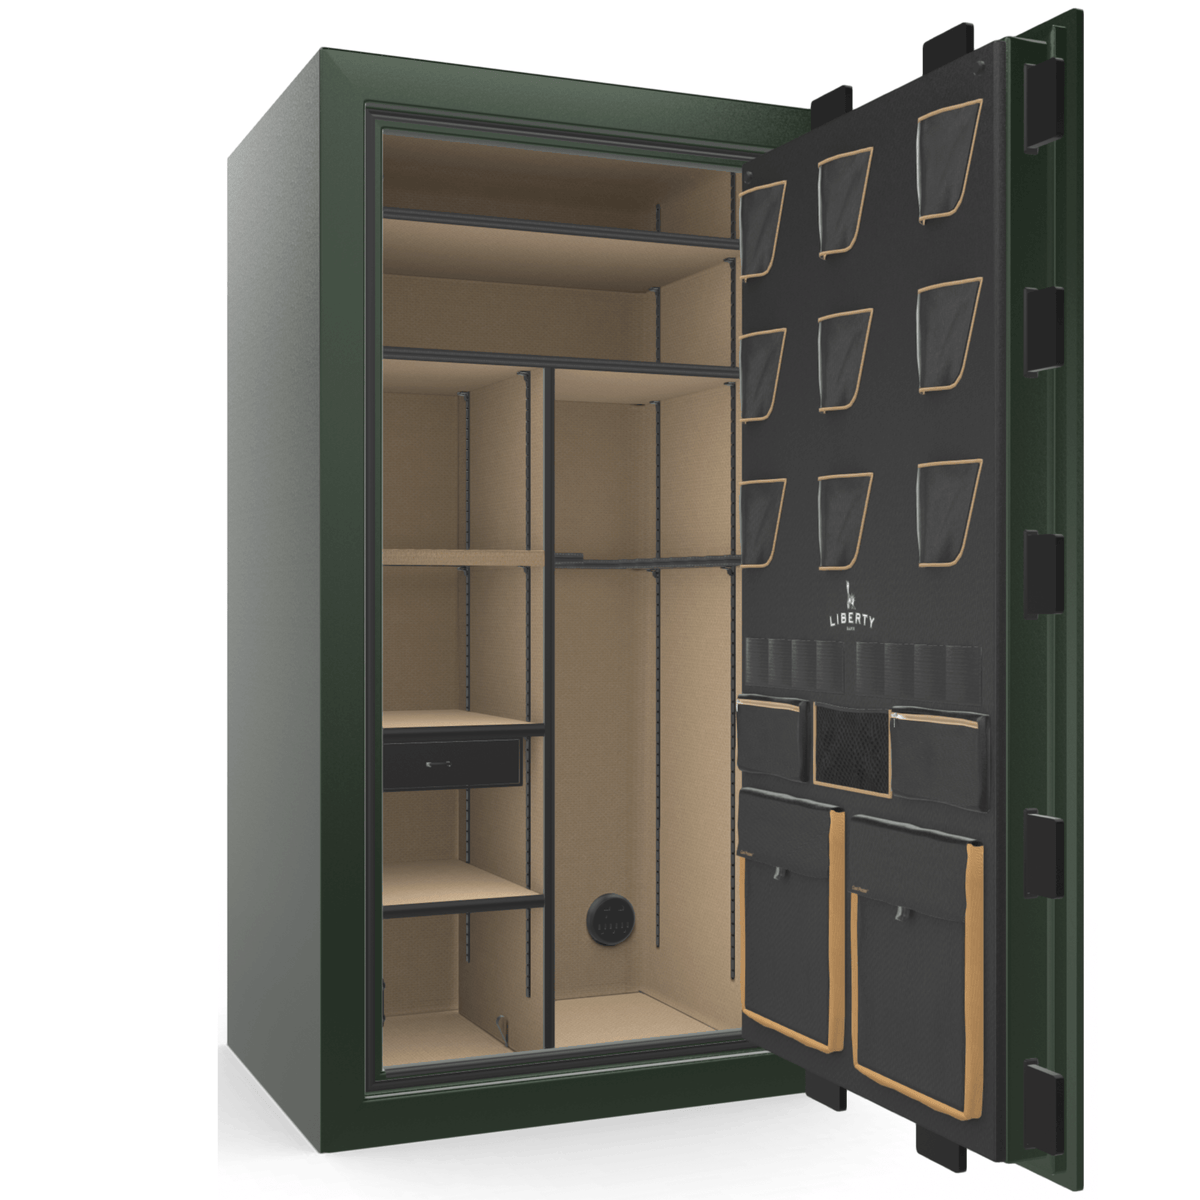 "Classic Plus | 40 | Level 7 Security | 110 Minute Fire Protection | Green 2-Tone | Black Electronic Lock | 65.5""(H) x 36""(W) x 32""(D)"